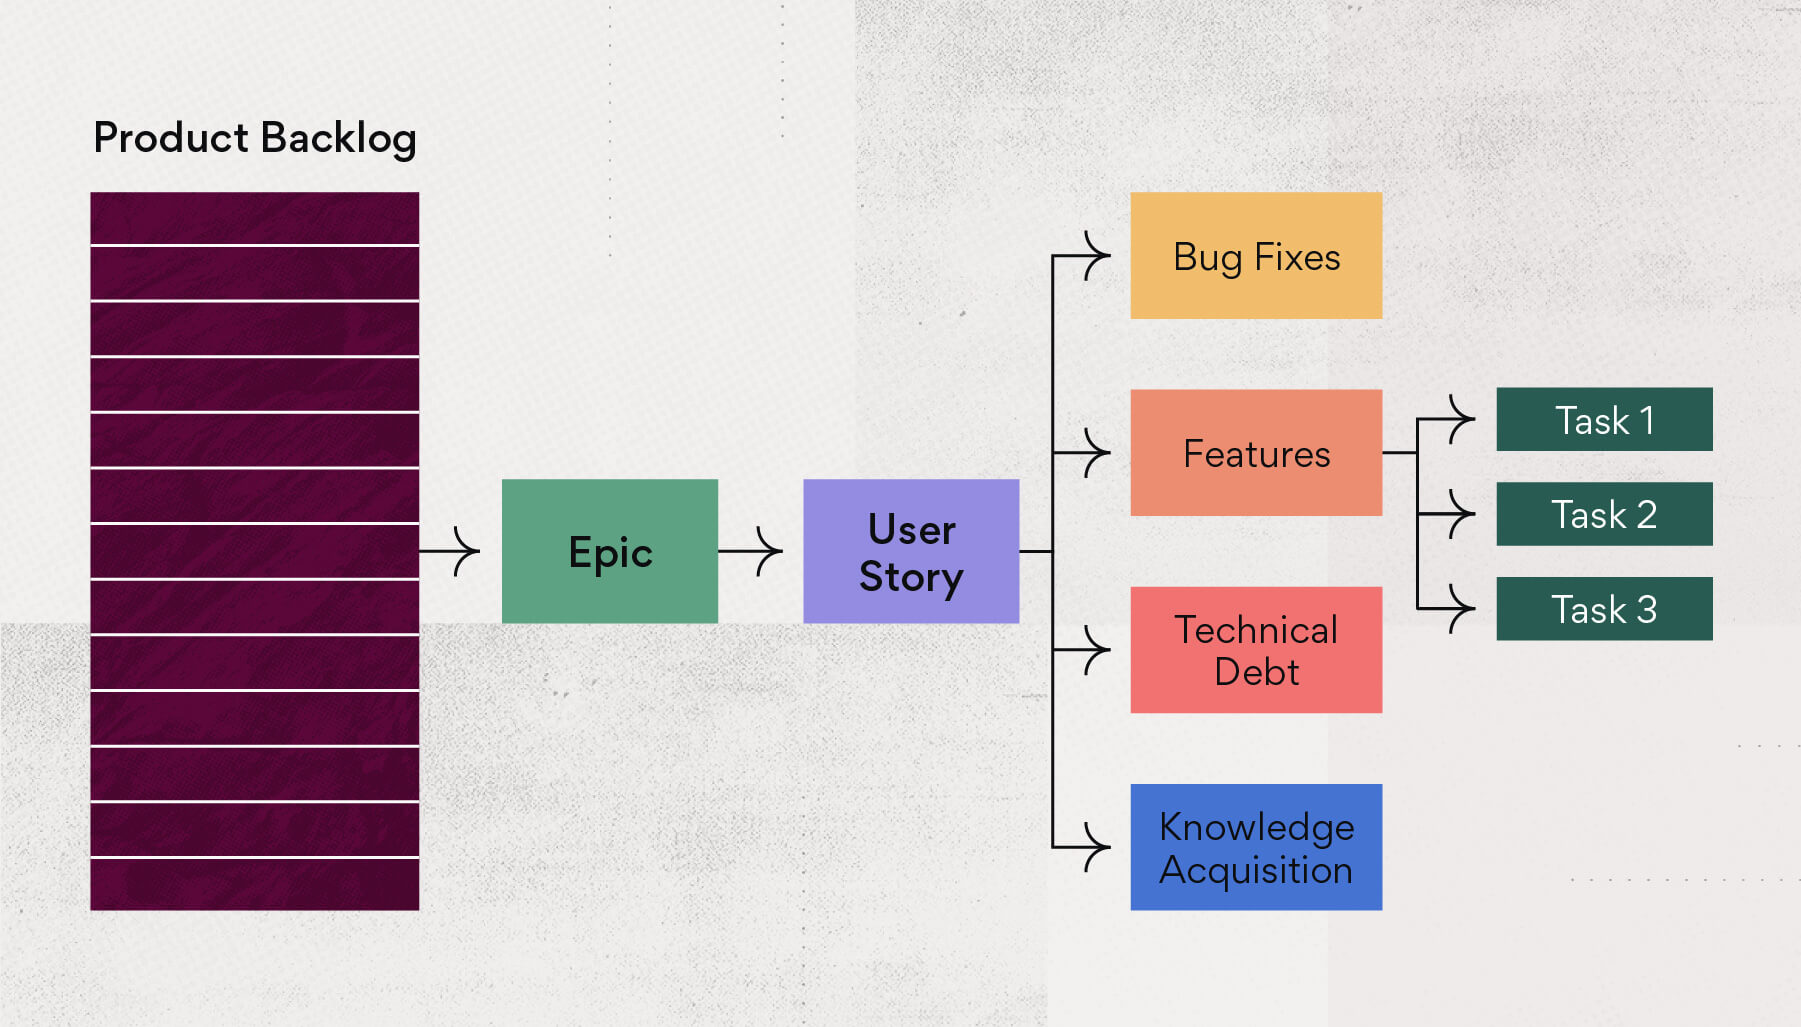 What's included in a product backlog?